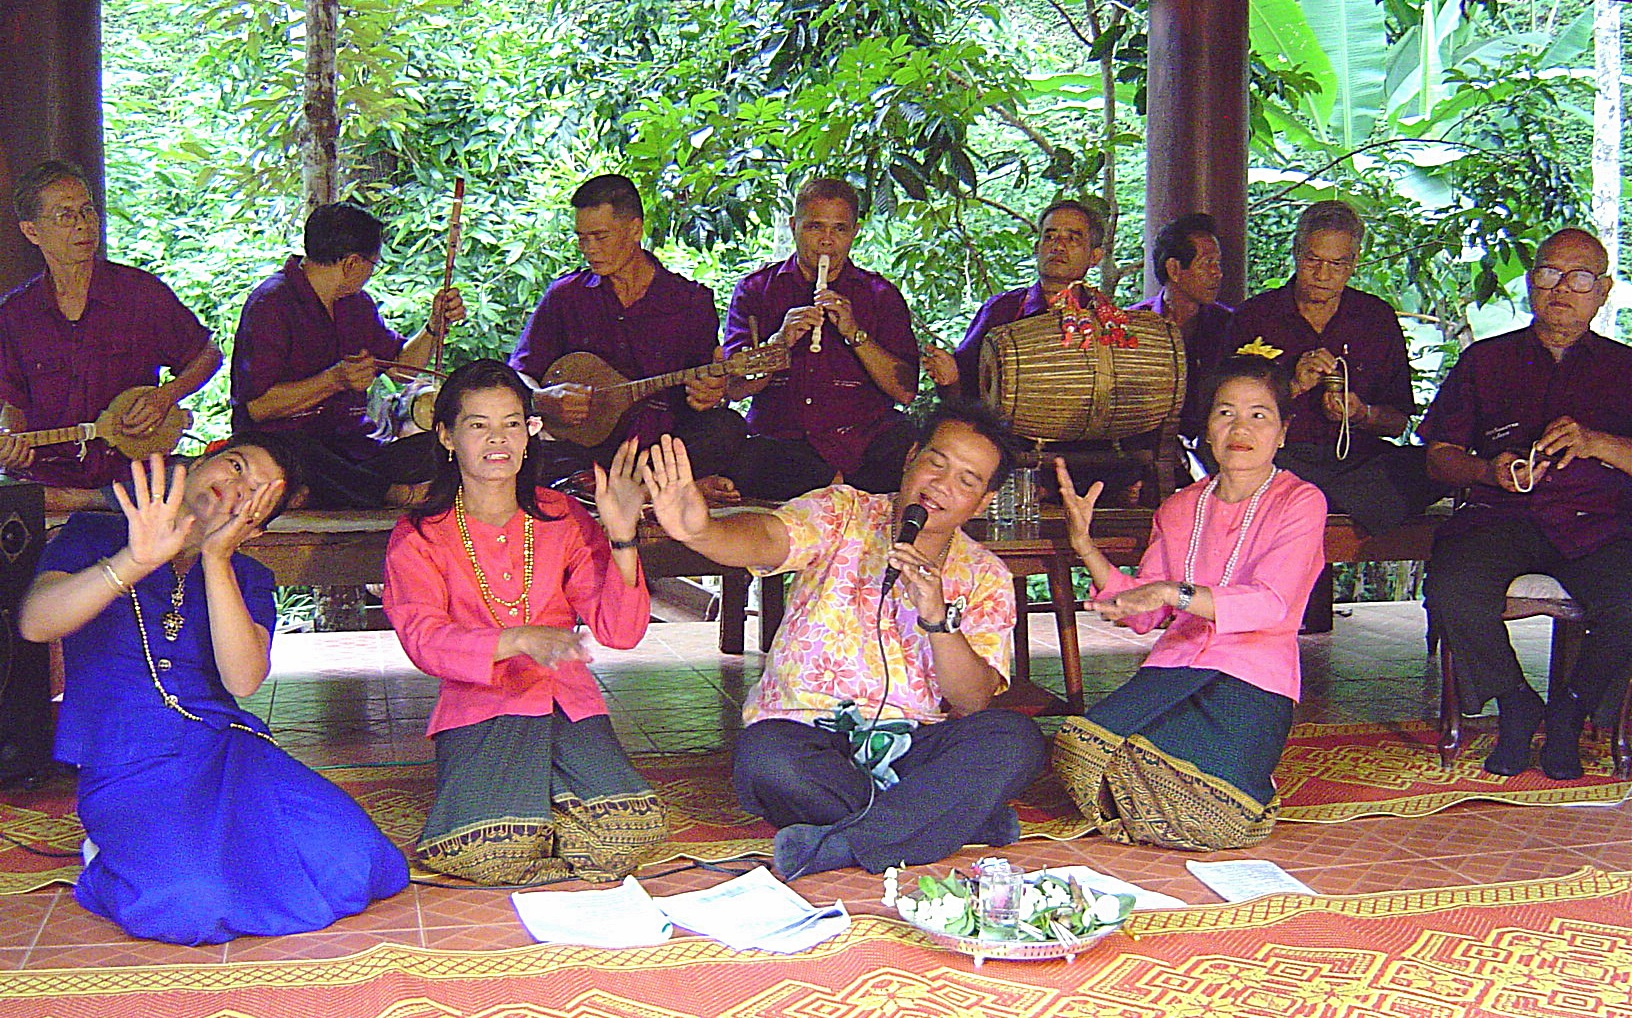 Thai musicians in exile for their songs fear for their lives